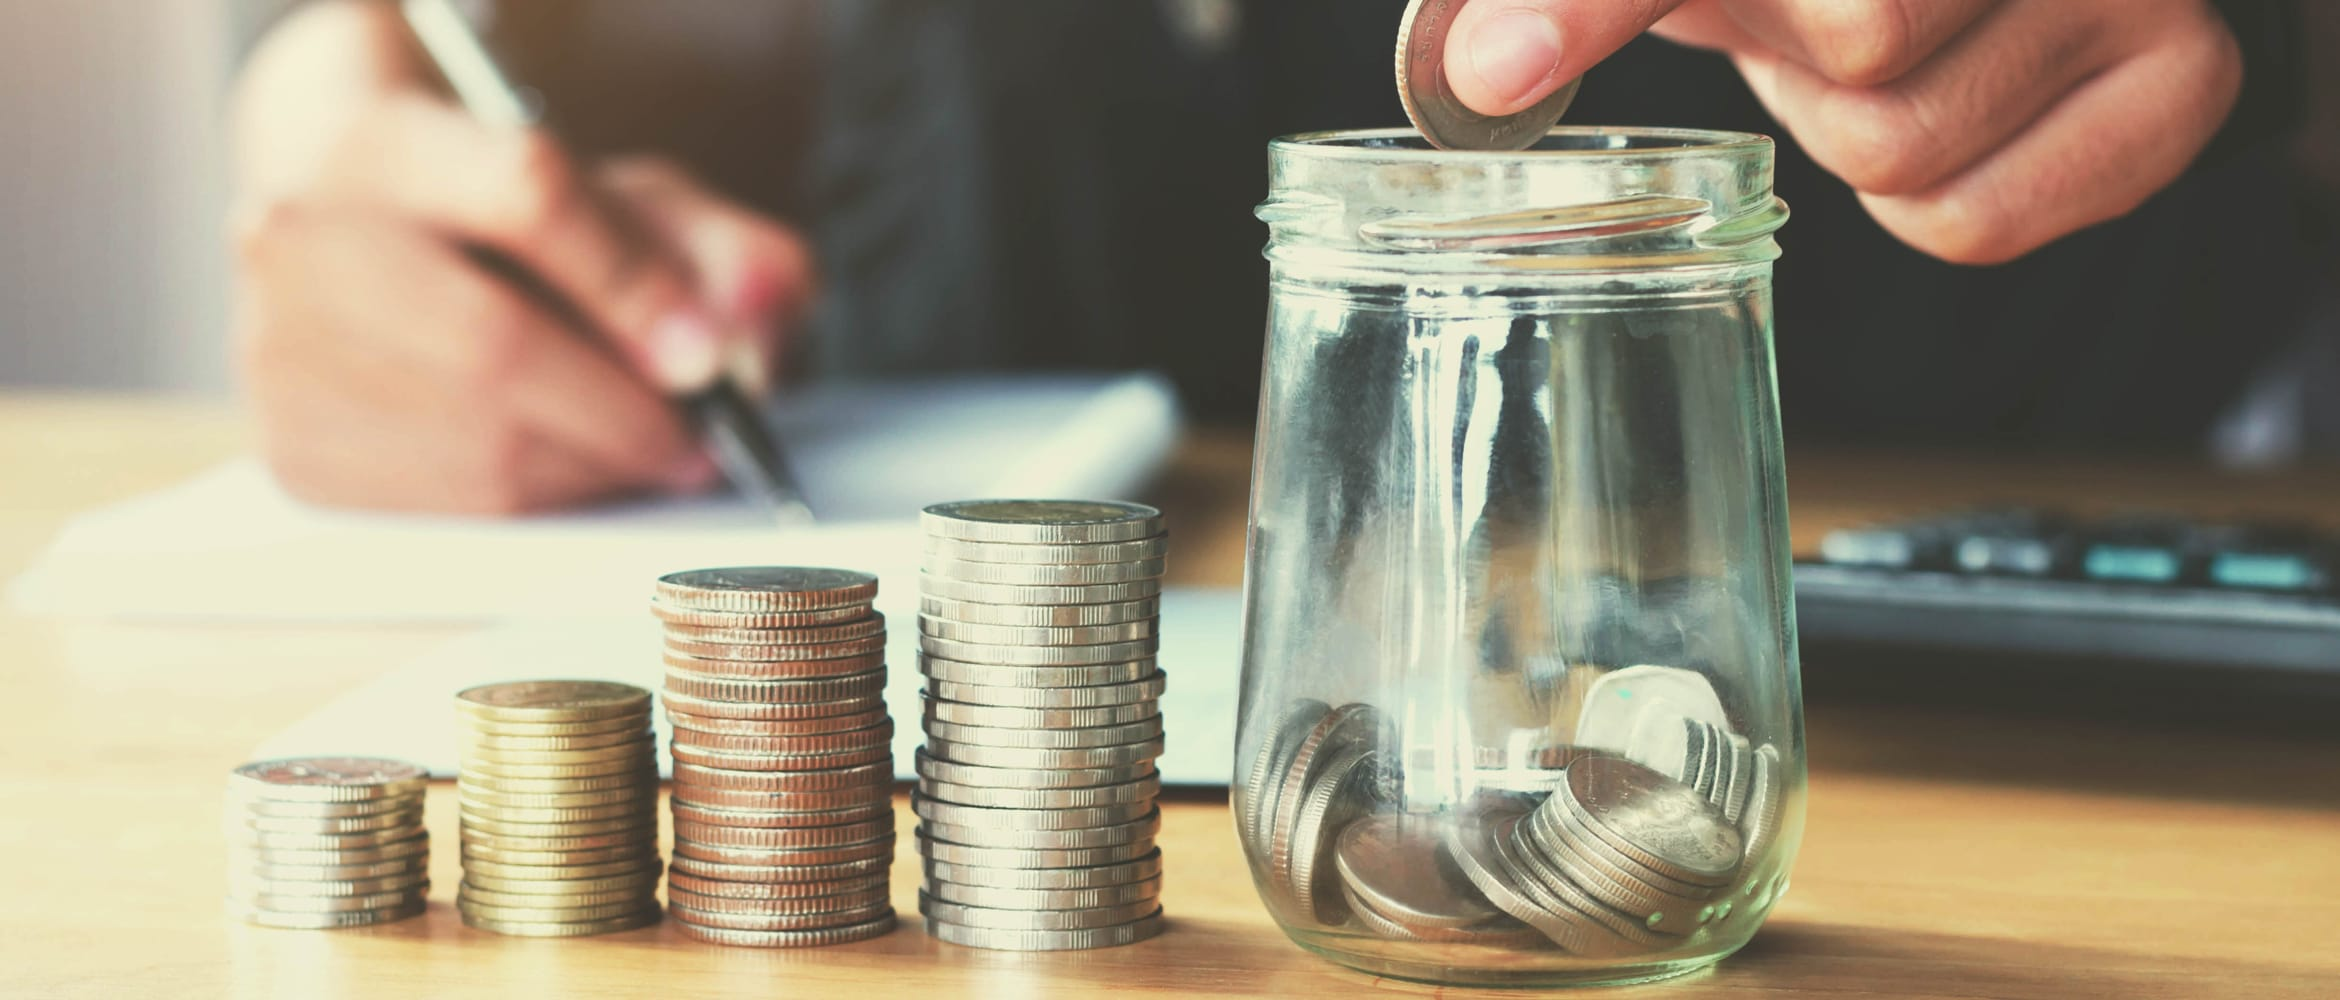 hand placing coins into a jar, to highlight the concept of cost control